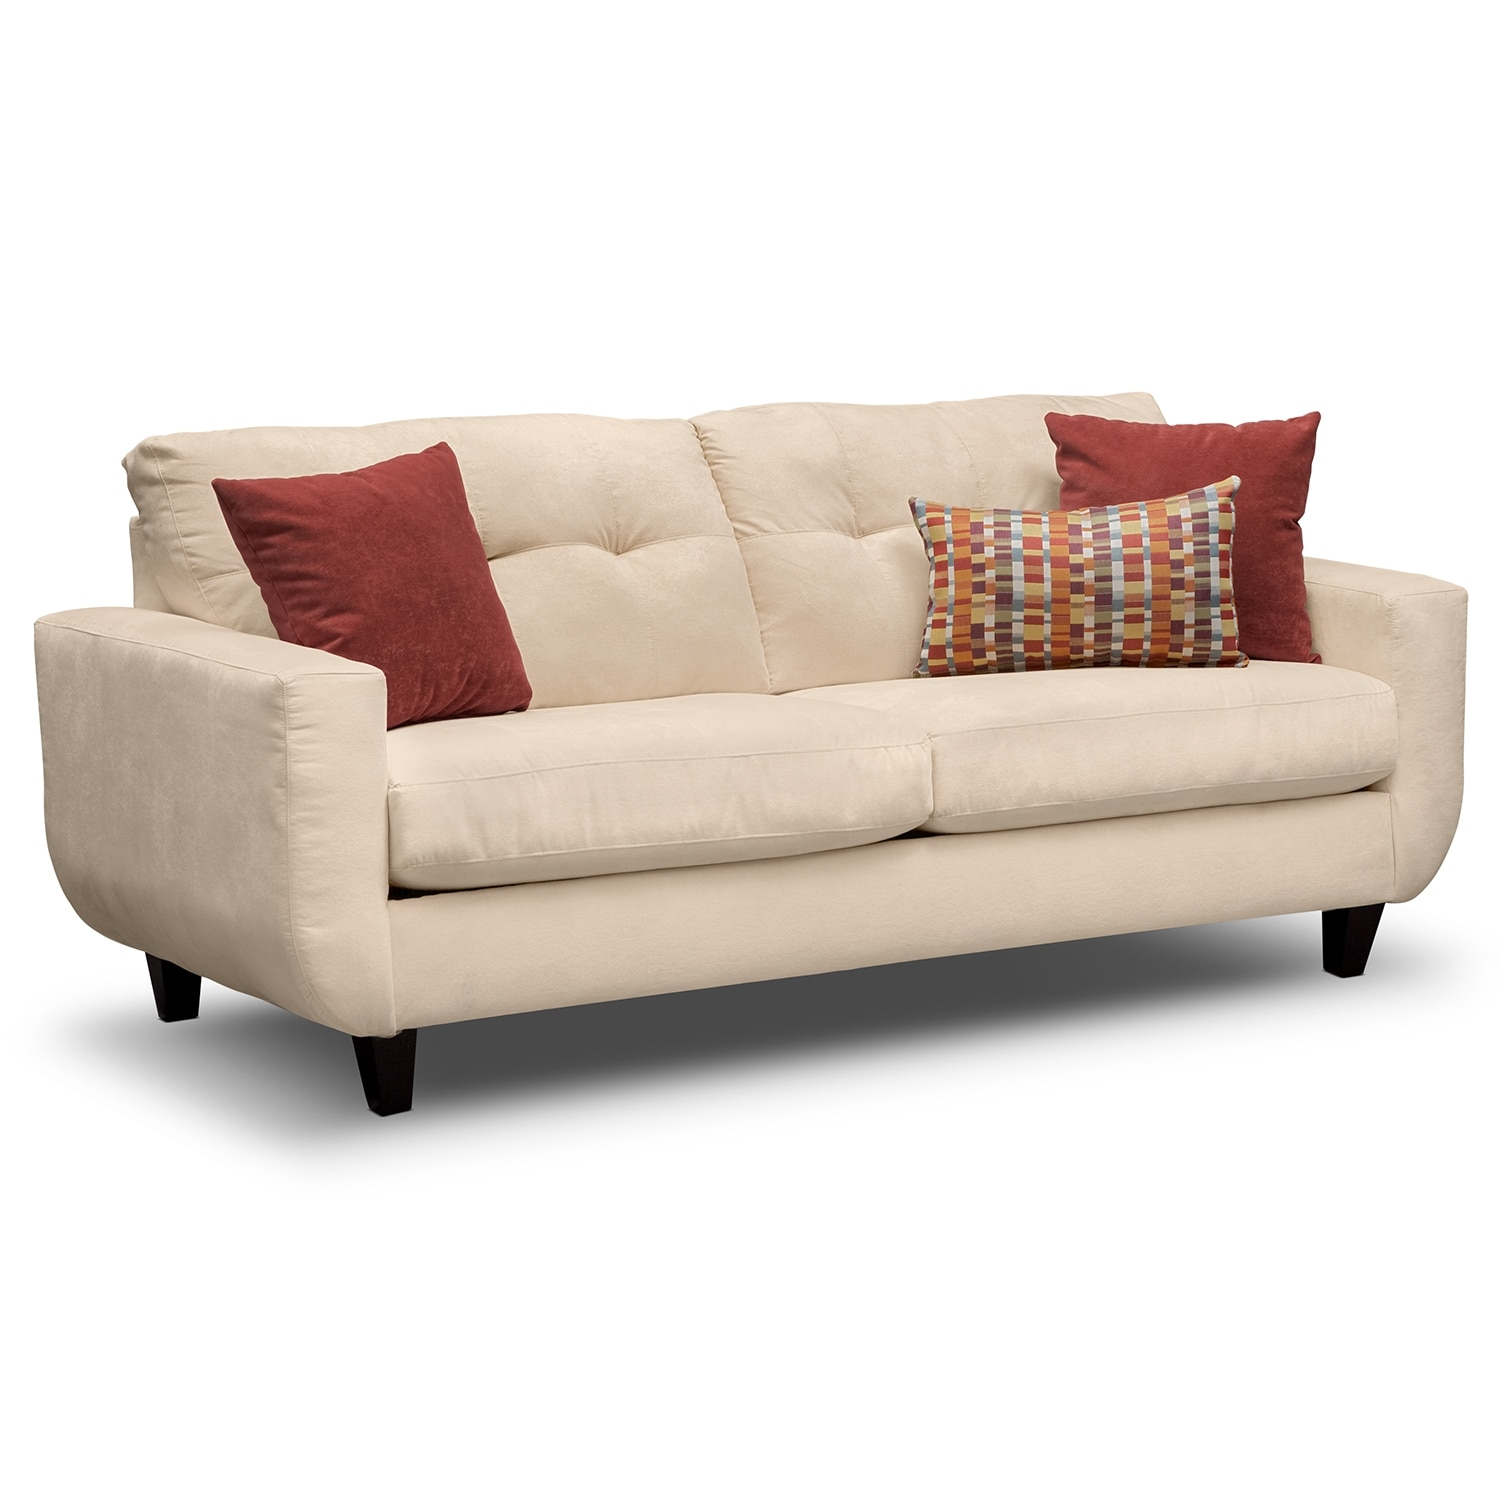 z gallerie stella sofa cleaning beige leather sectional cream west village american signature